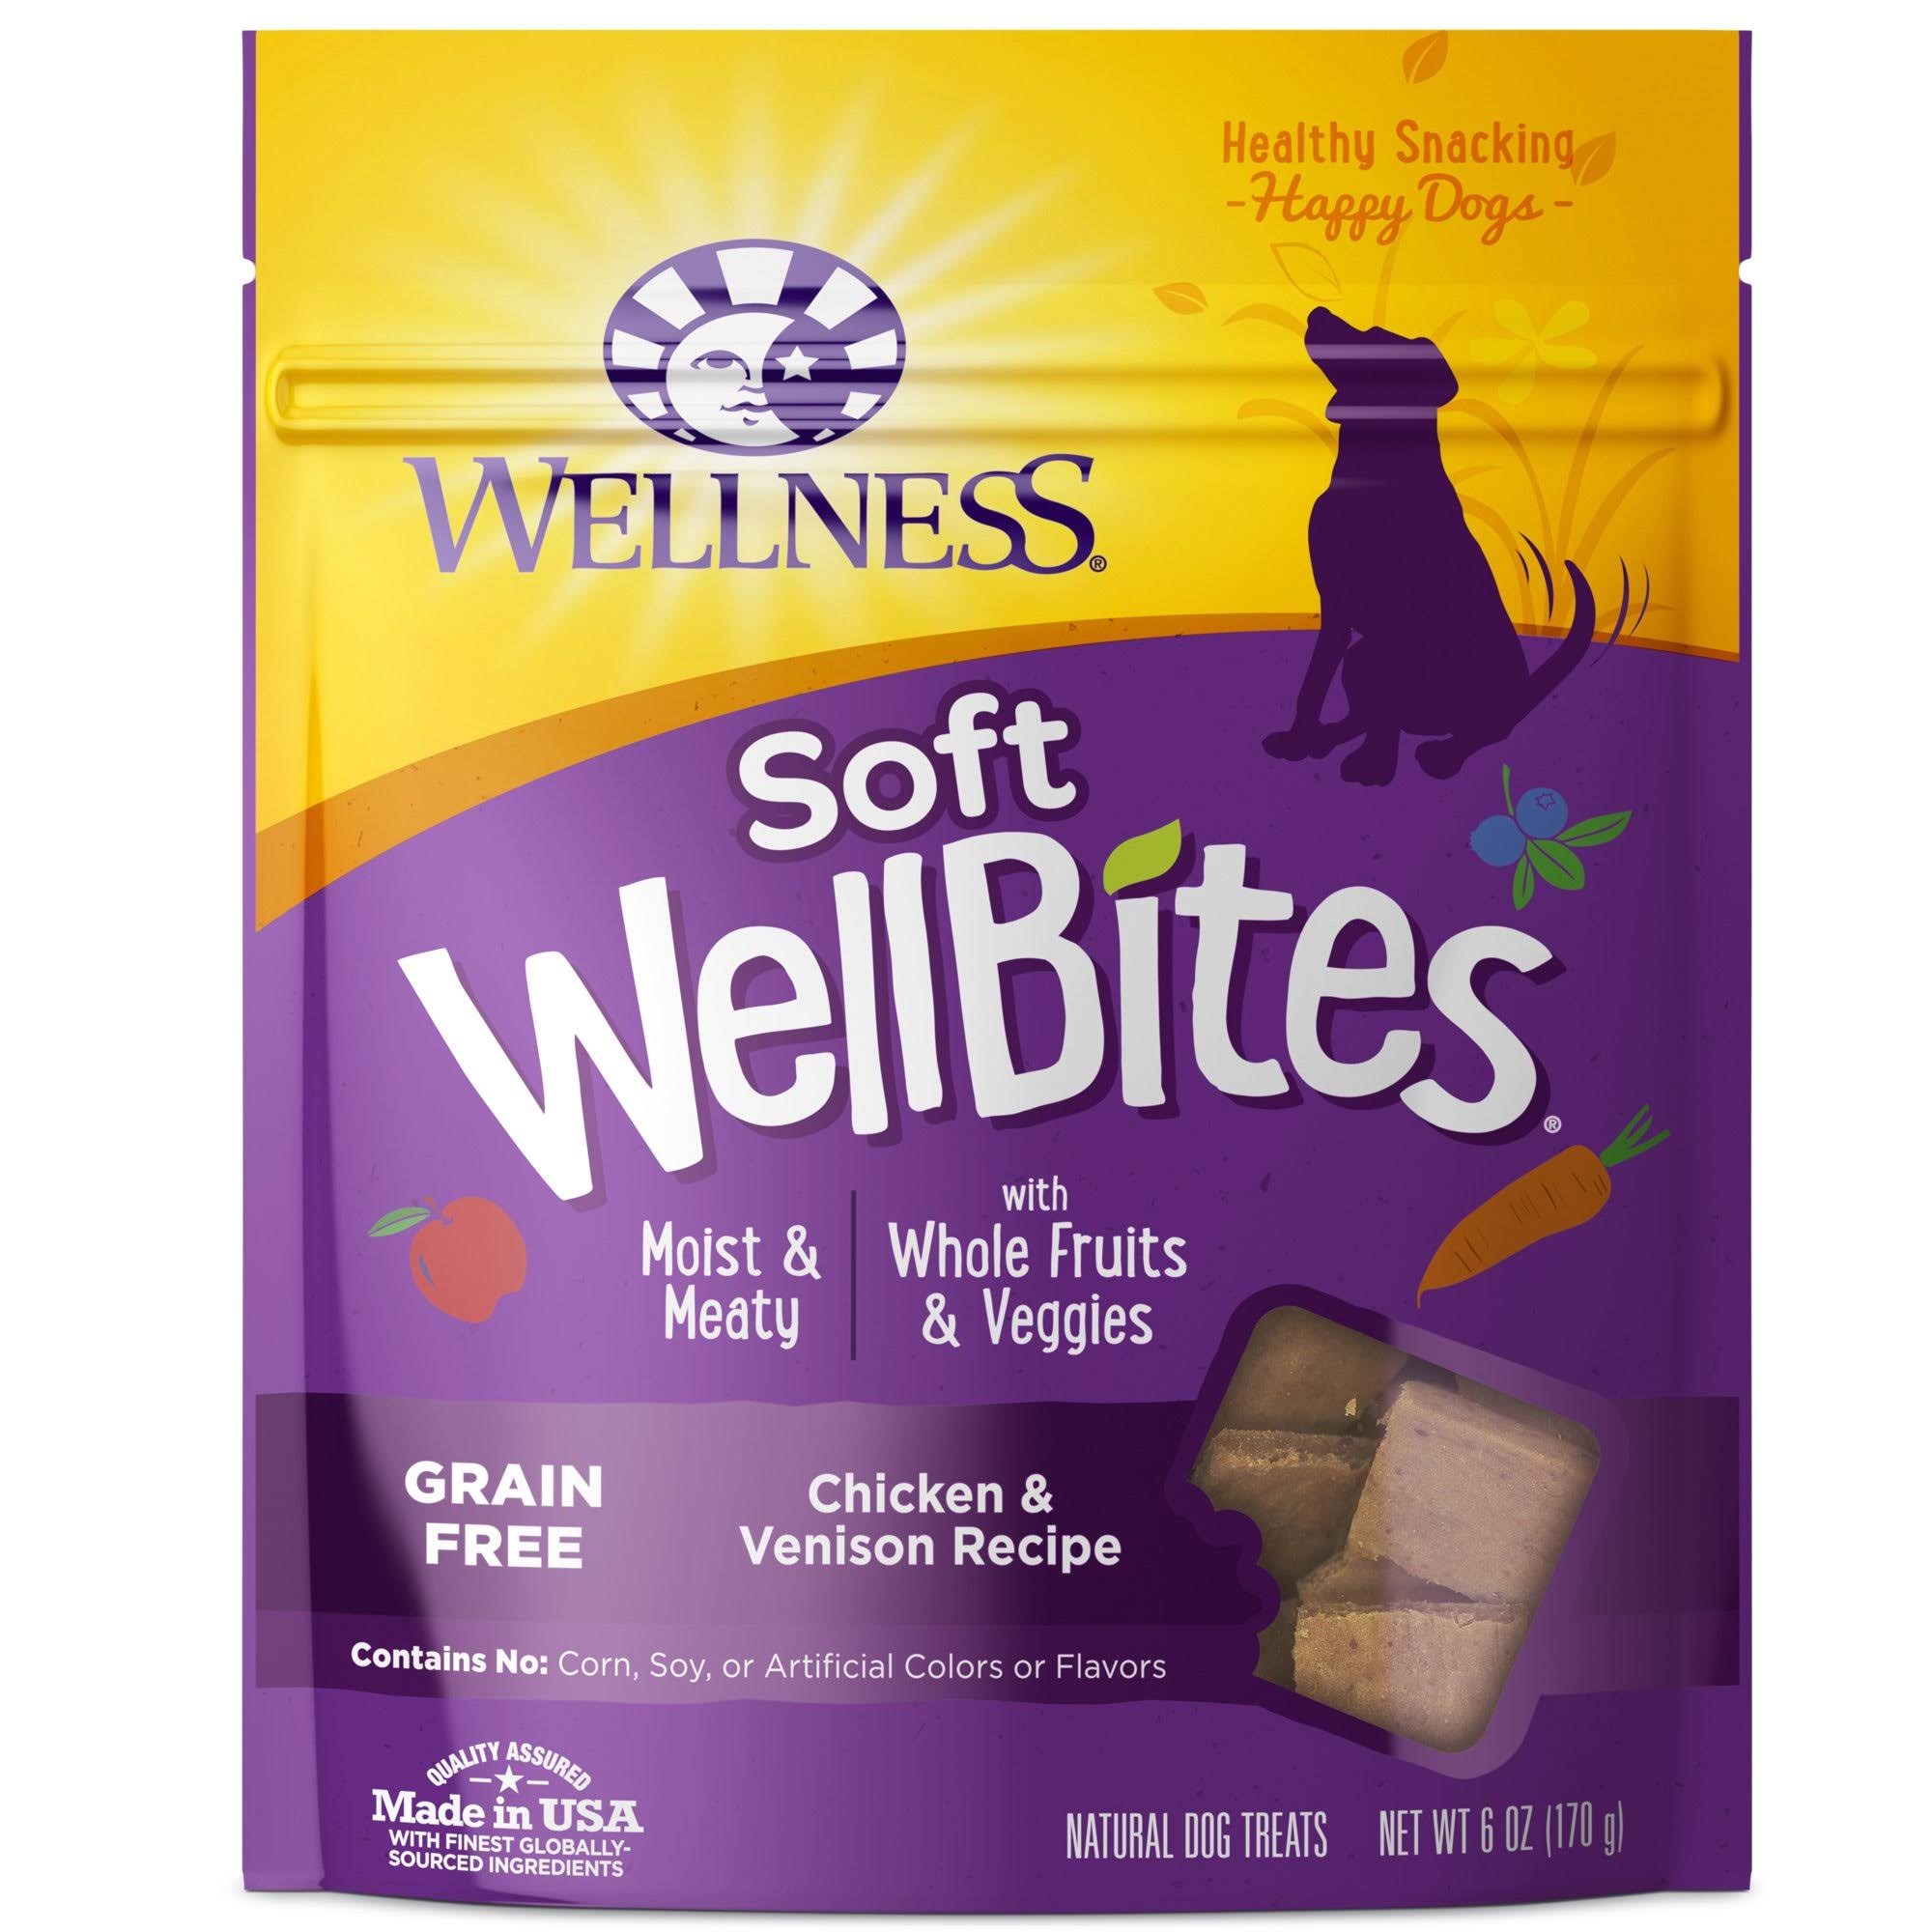 Wellness Soft Well Bites Dog Treats - Chicken & Venison Recipe, 170g